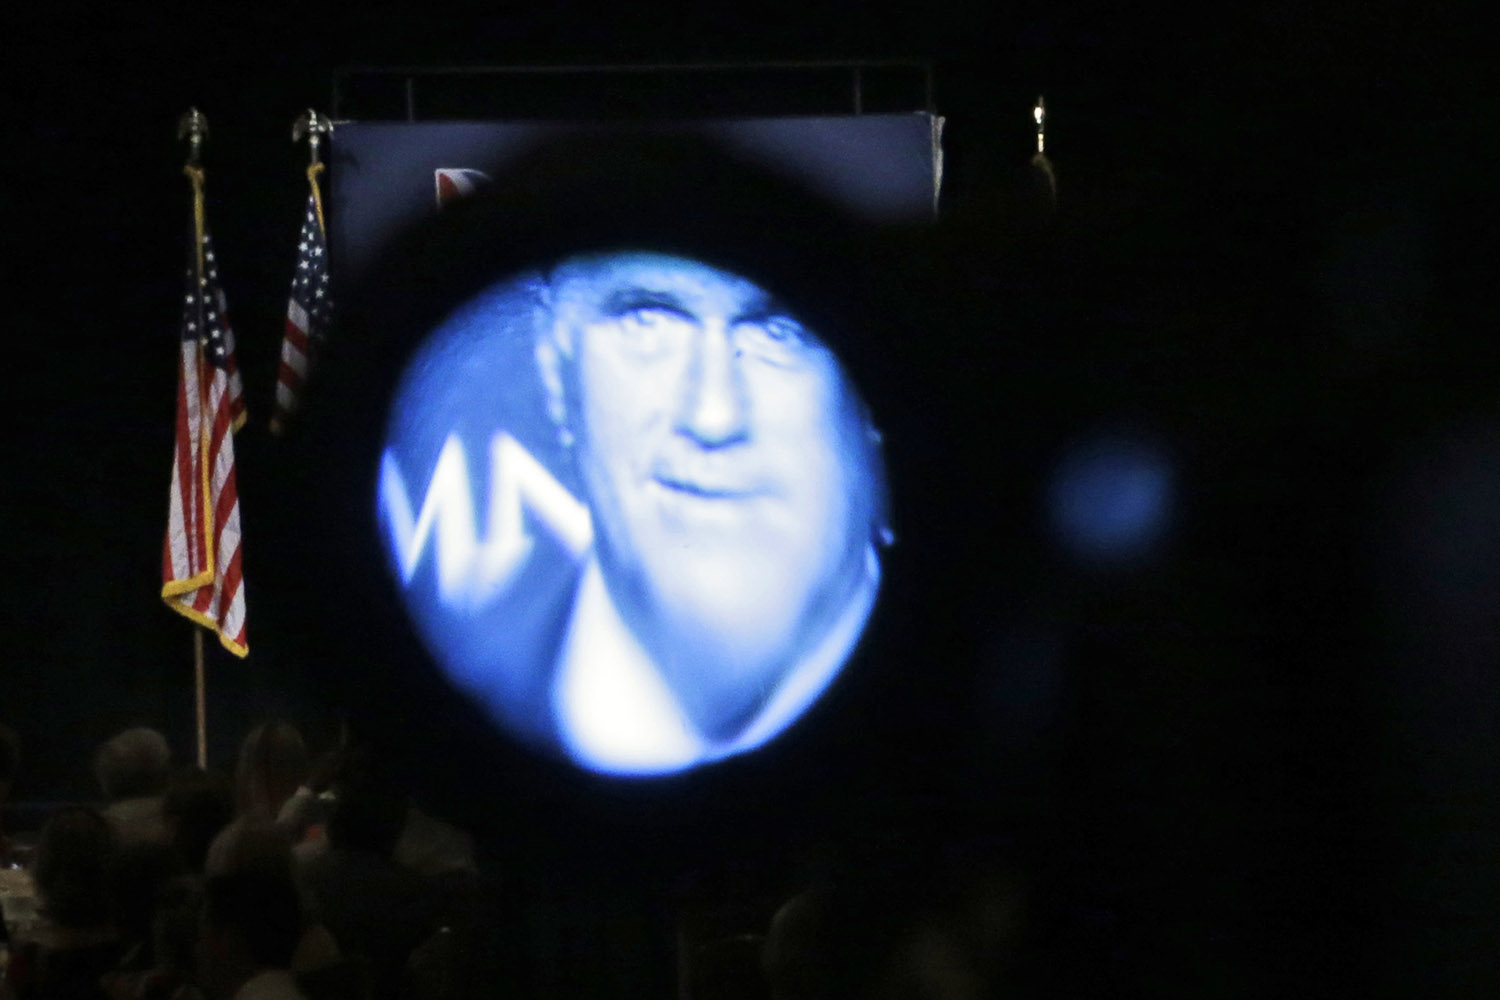 Sept. 18, 2012. Republican presidential candidate Mitt Romney is seen through a television camera's viewfinder as he speaks at a campaign fundraising event at The Grand America in Salt Lake City.